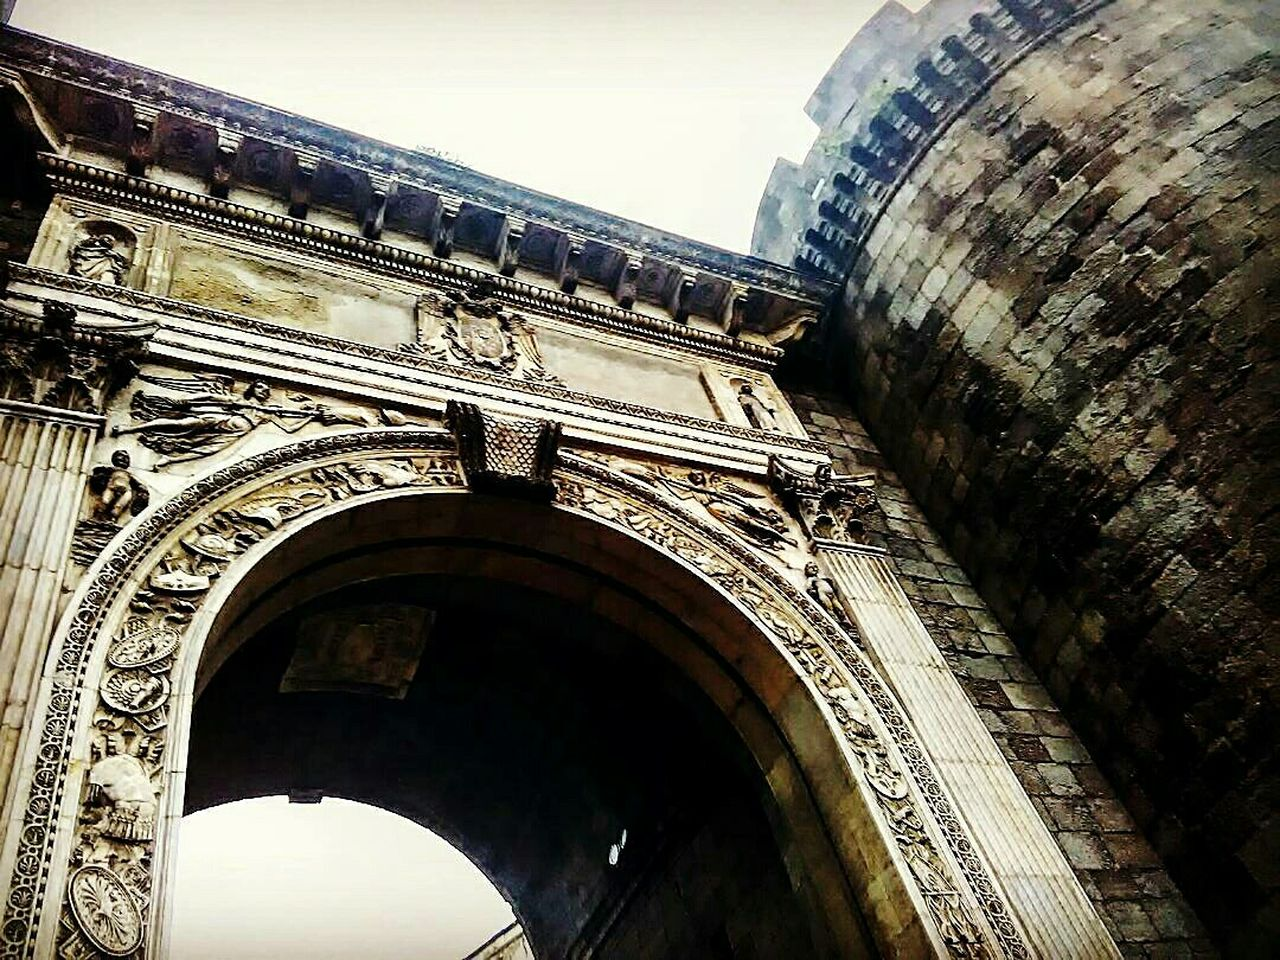 Architecture Travel Destinations Built Structure Cultures Arch Tourism Low Angle View City Building Exterior History Triumphal Arch Sky Outdoors No People Day Napoli Italy Love Meandyou Silhouette South City Napoli Street Italia City Street Travel